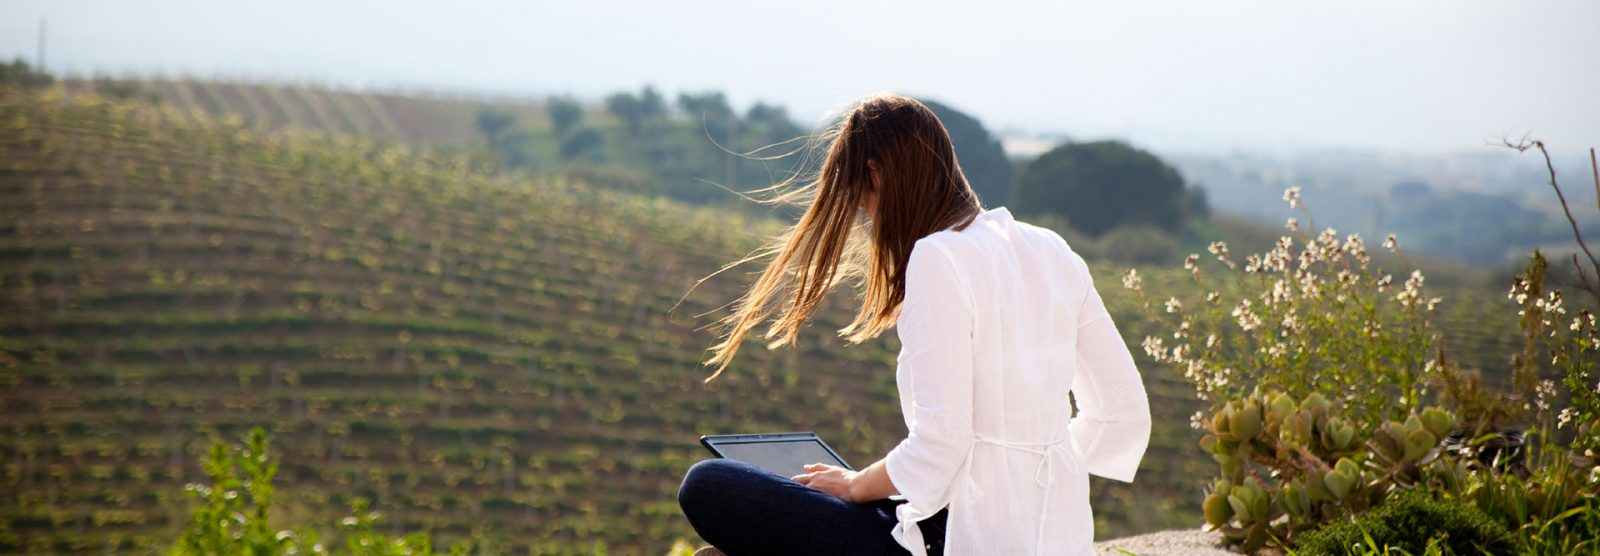 woman in Paso Robles vineyards